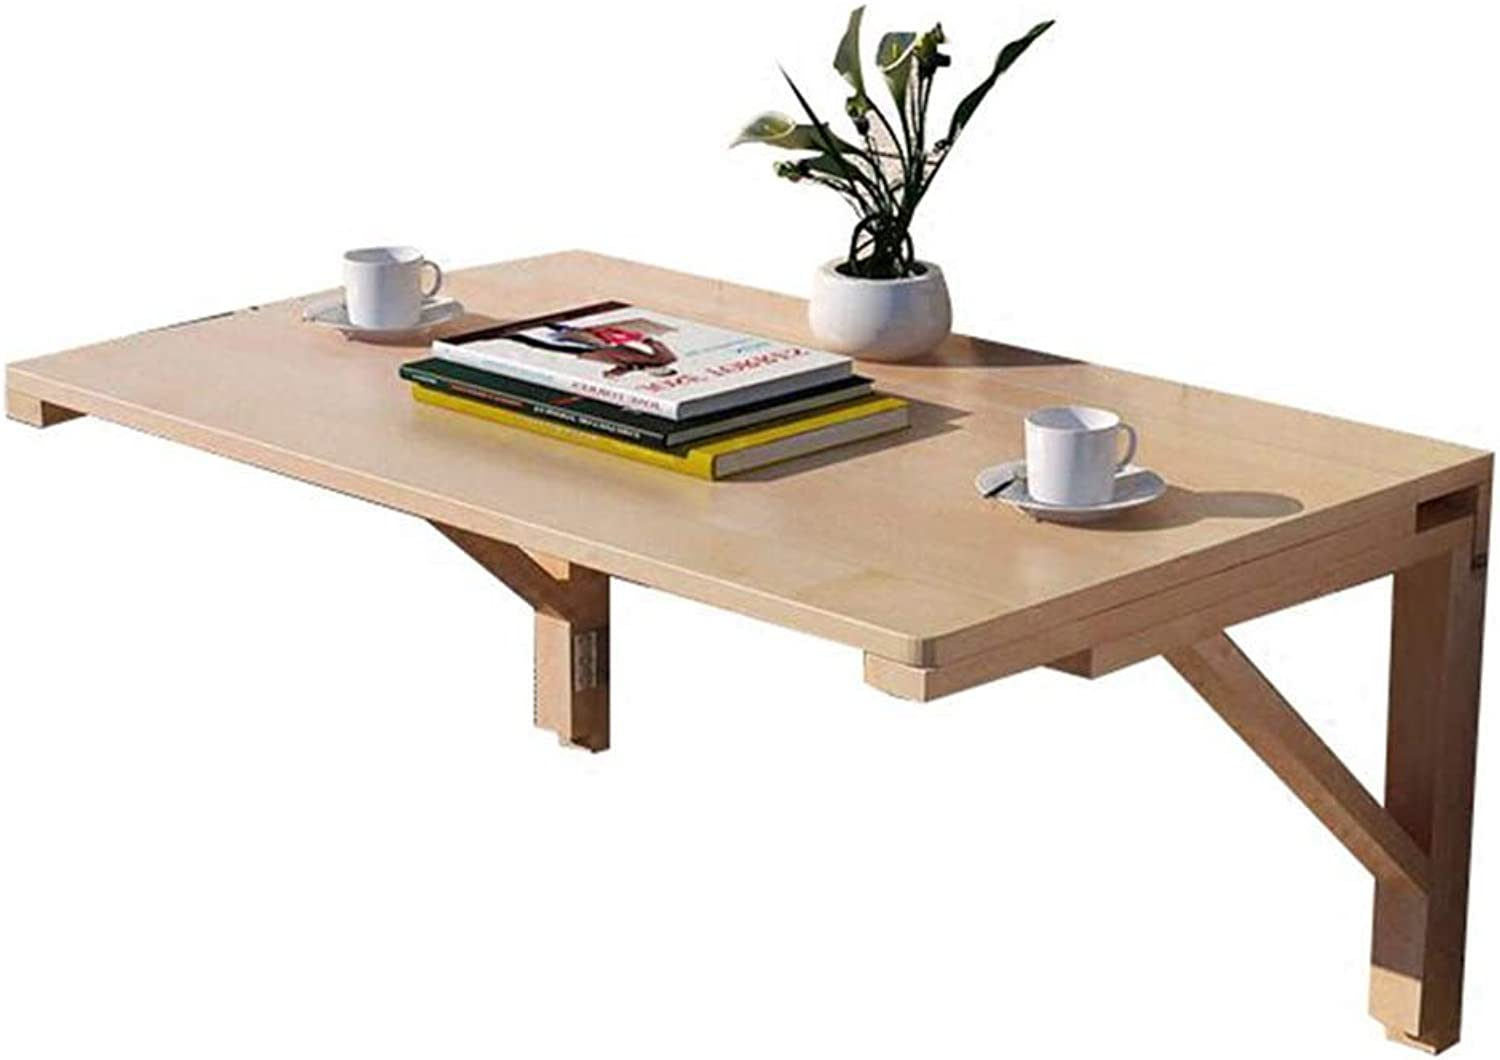 PENGFEI Wall-Mounted Table Laptop Stand Desk Wall Table Kitchen Countertop Multifunction Study Desk, Pine, Multiple Sizes (color   Wood Colour, Size   50x30x40cm)